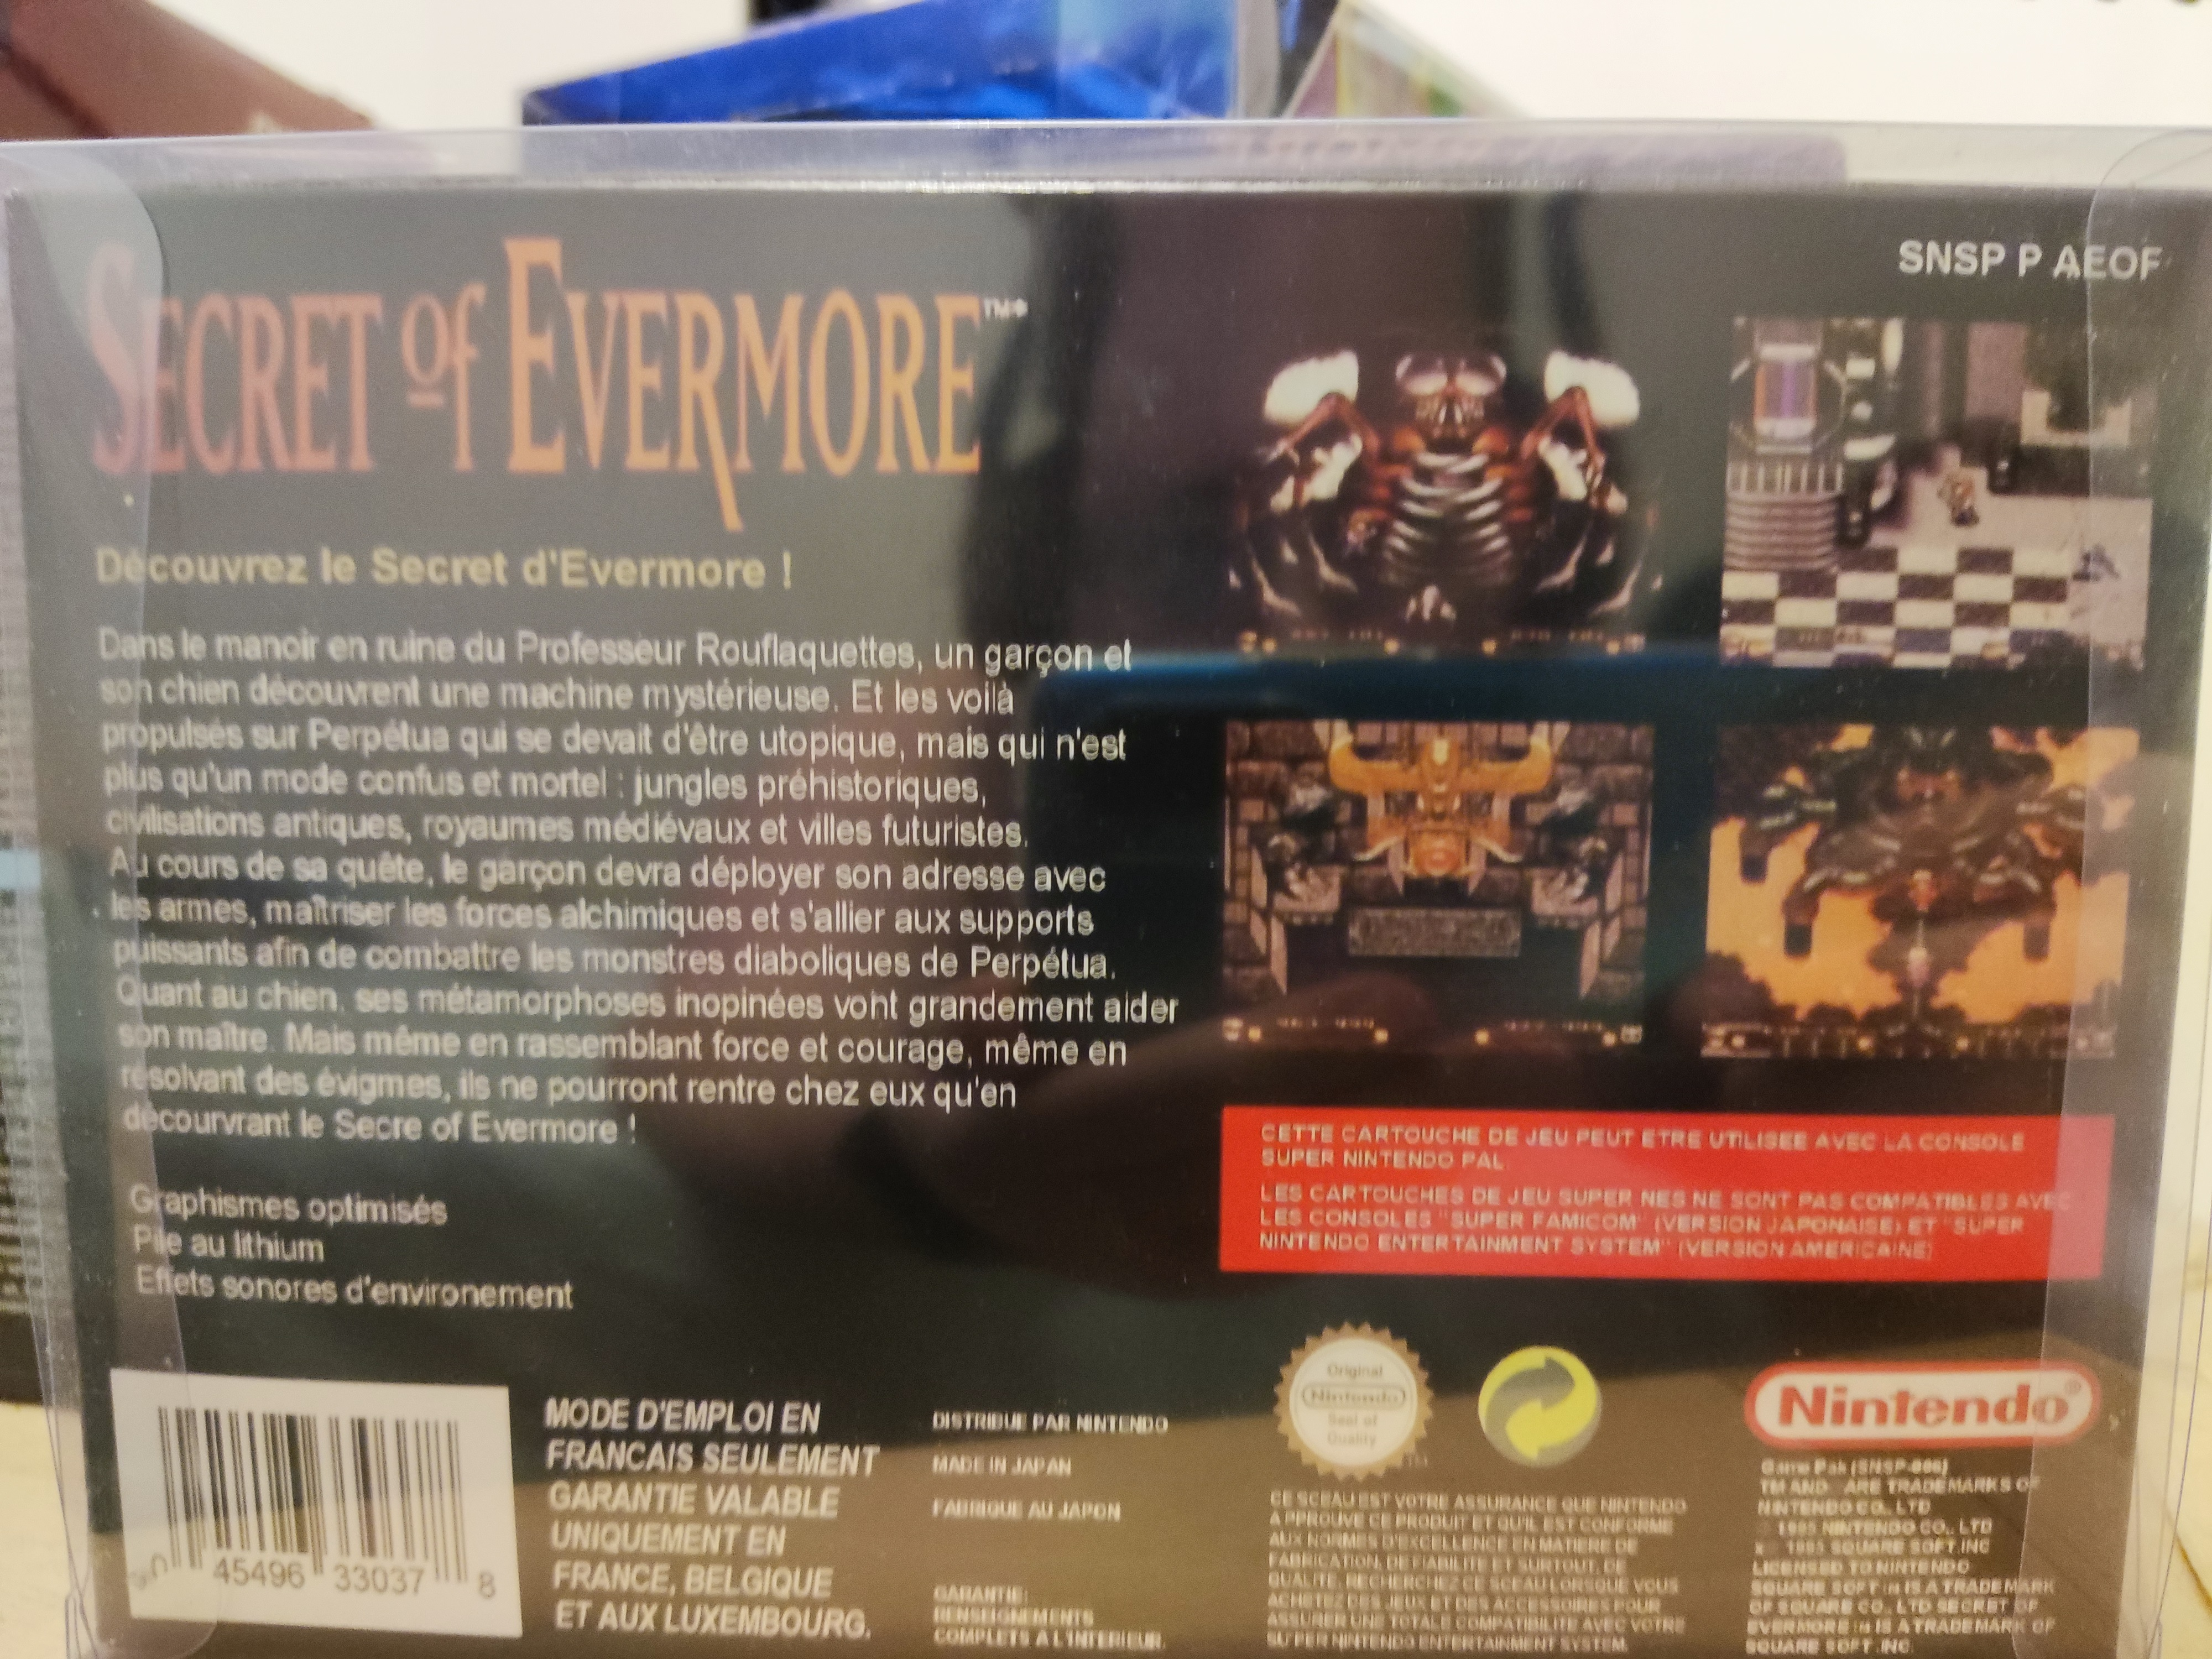 Secret of Evermore with box 16bit game cartridge EU Version for pal console photo review